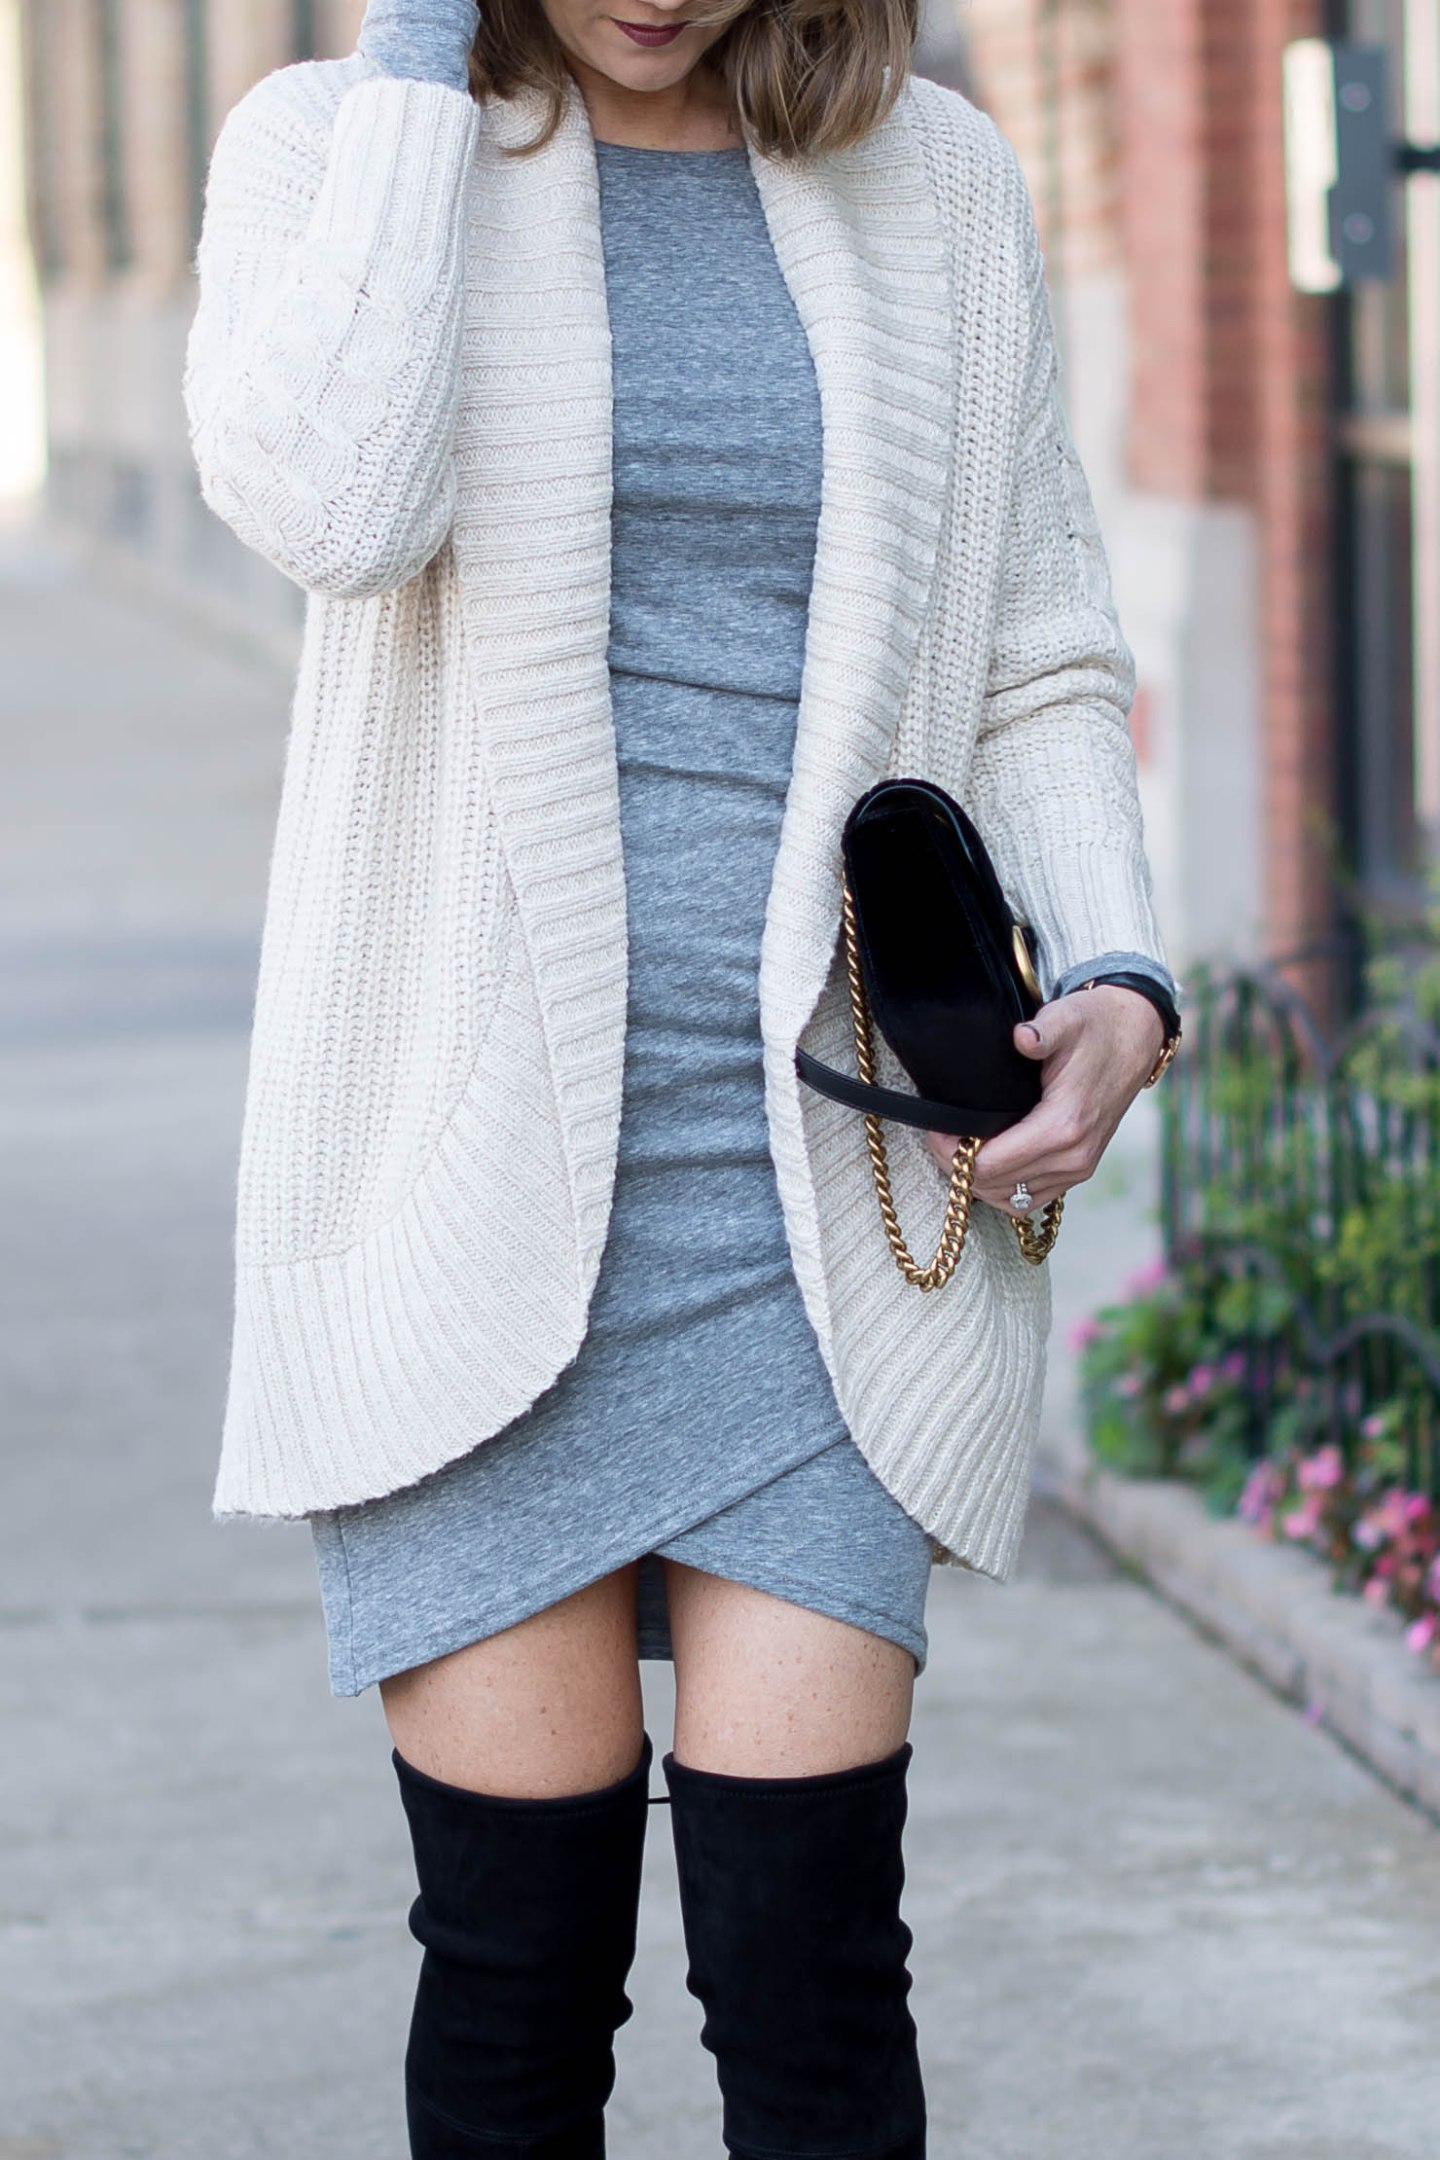 the most versatile dress you'll own, the dress that flatters every body type, how to style a short dress in the winter, cozy layers